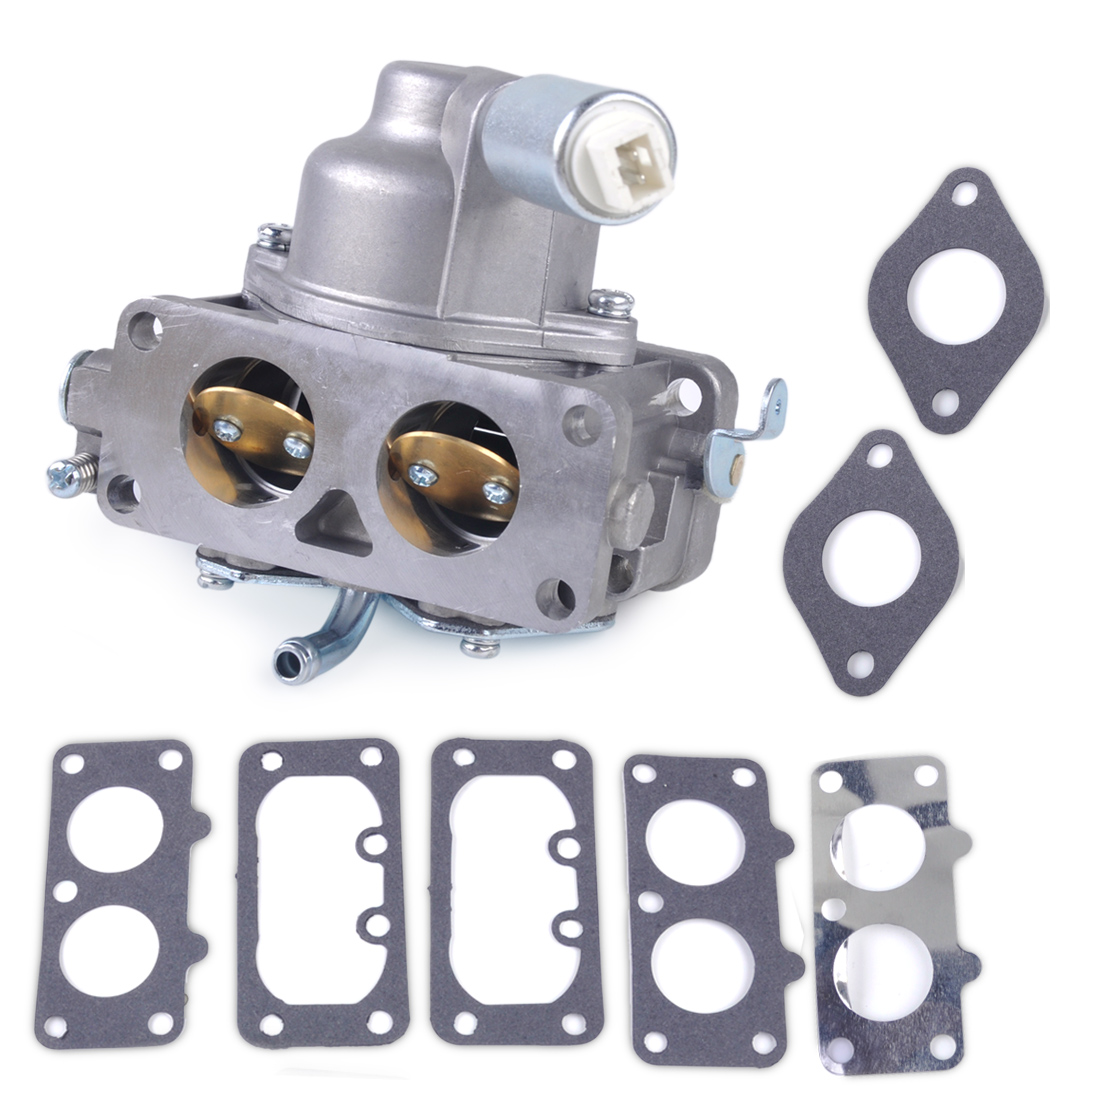 все цены на LETAOSK New Carburetor Replaces fit for Briggs & Stratton 791230 699709 499804 Manual Choke Accessories